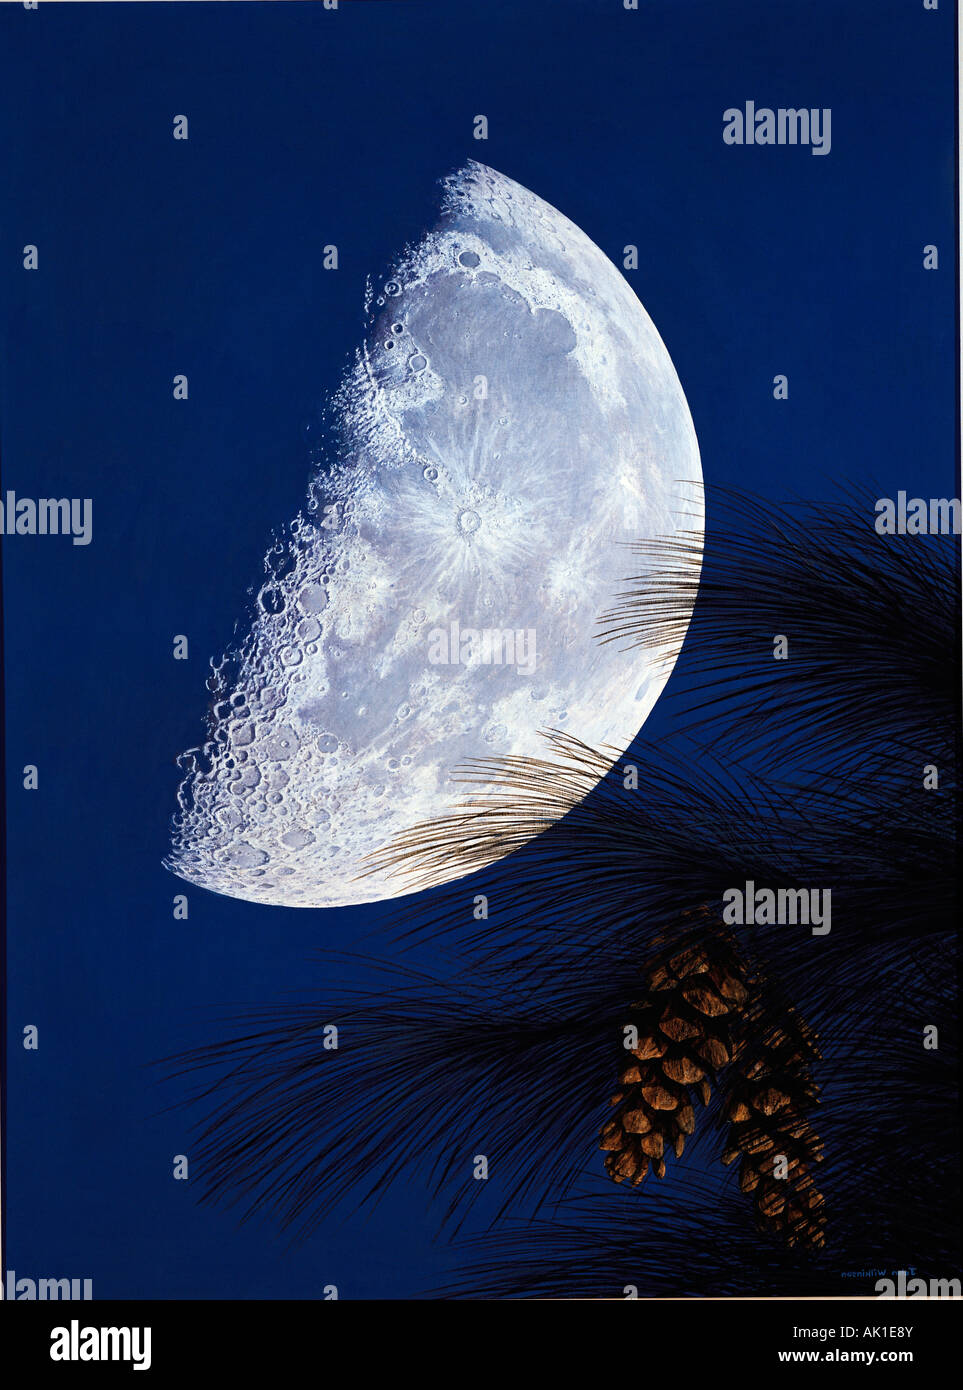 Illustration of half Moon with Pine tree cones. - Stock Image